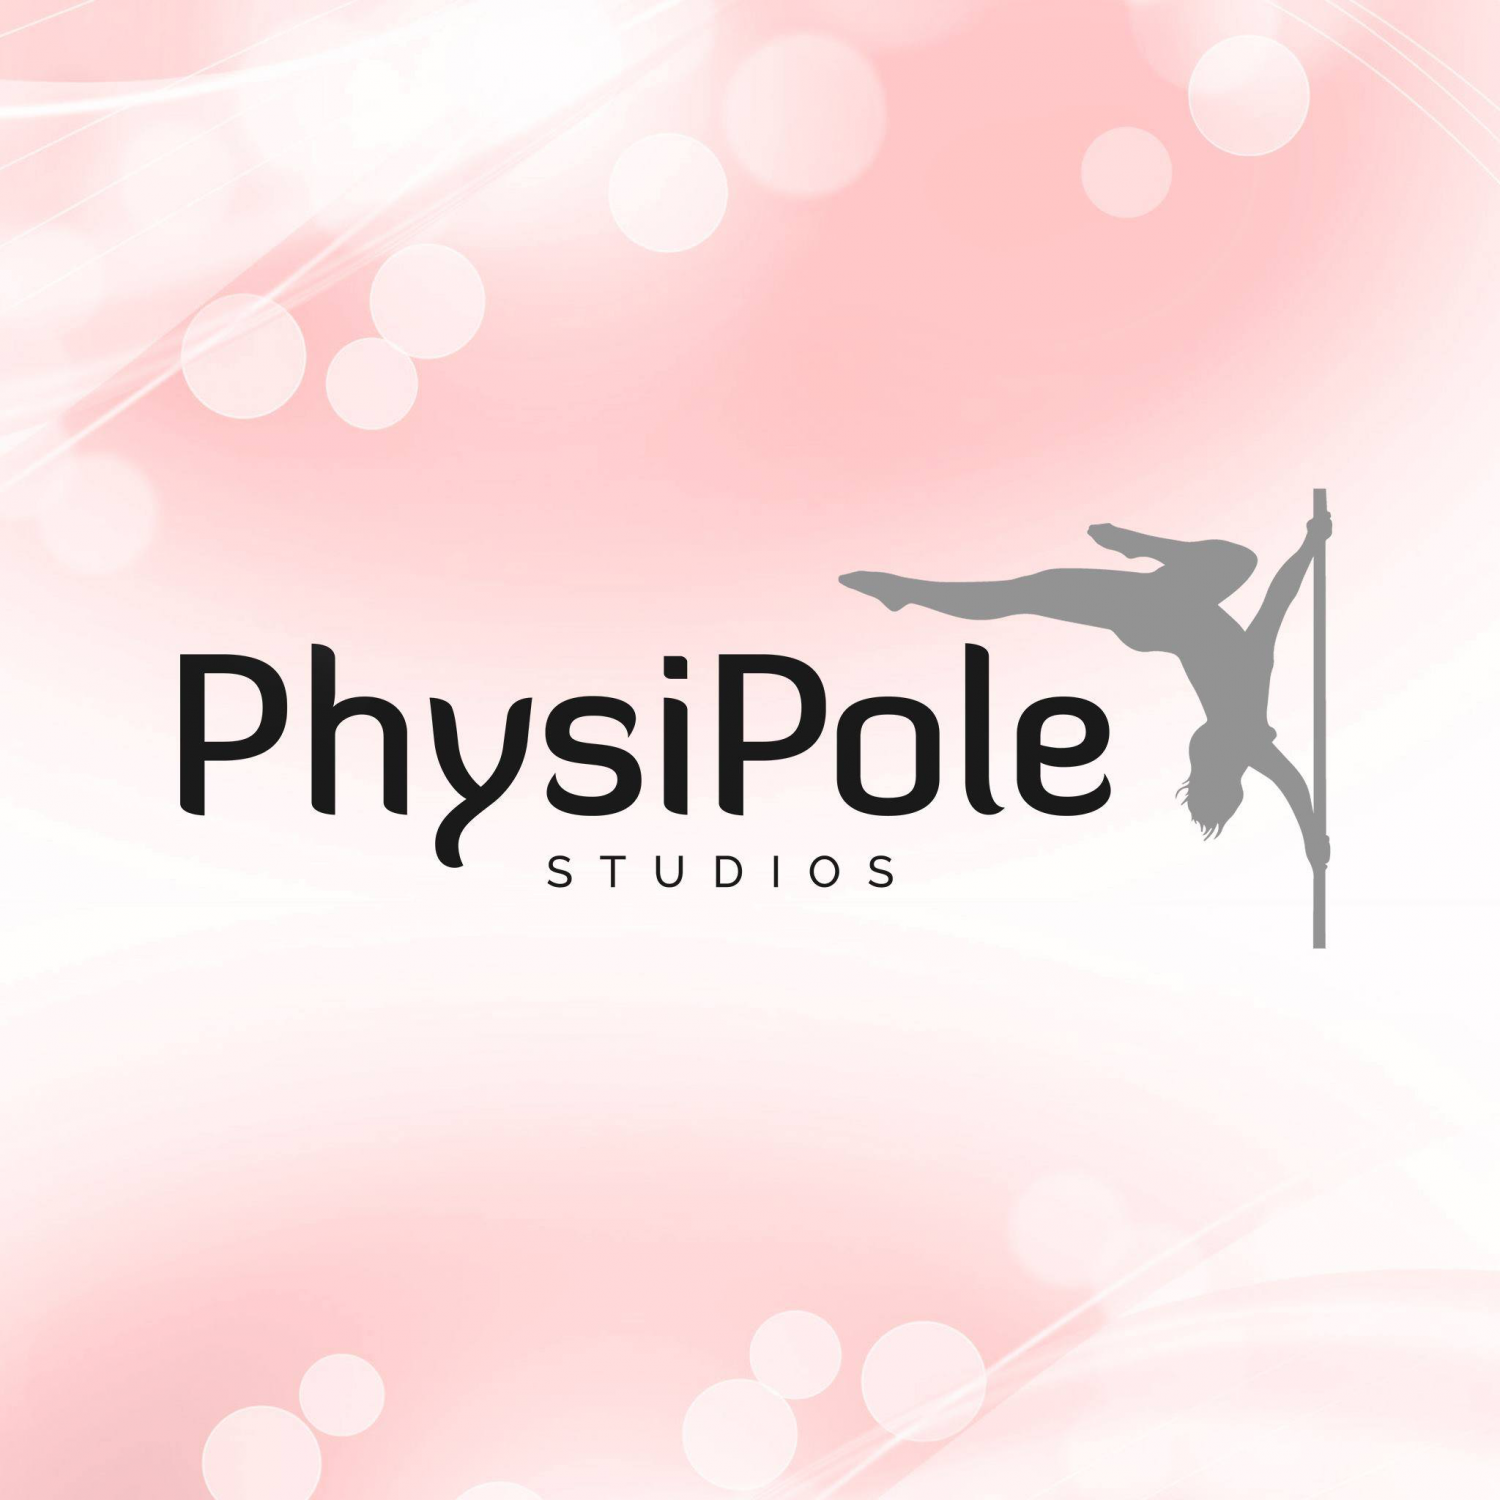 PhysiPole Studios Pty Ltd